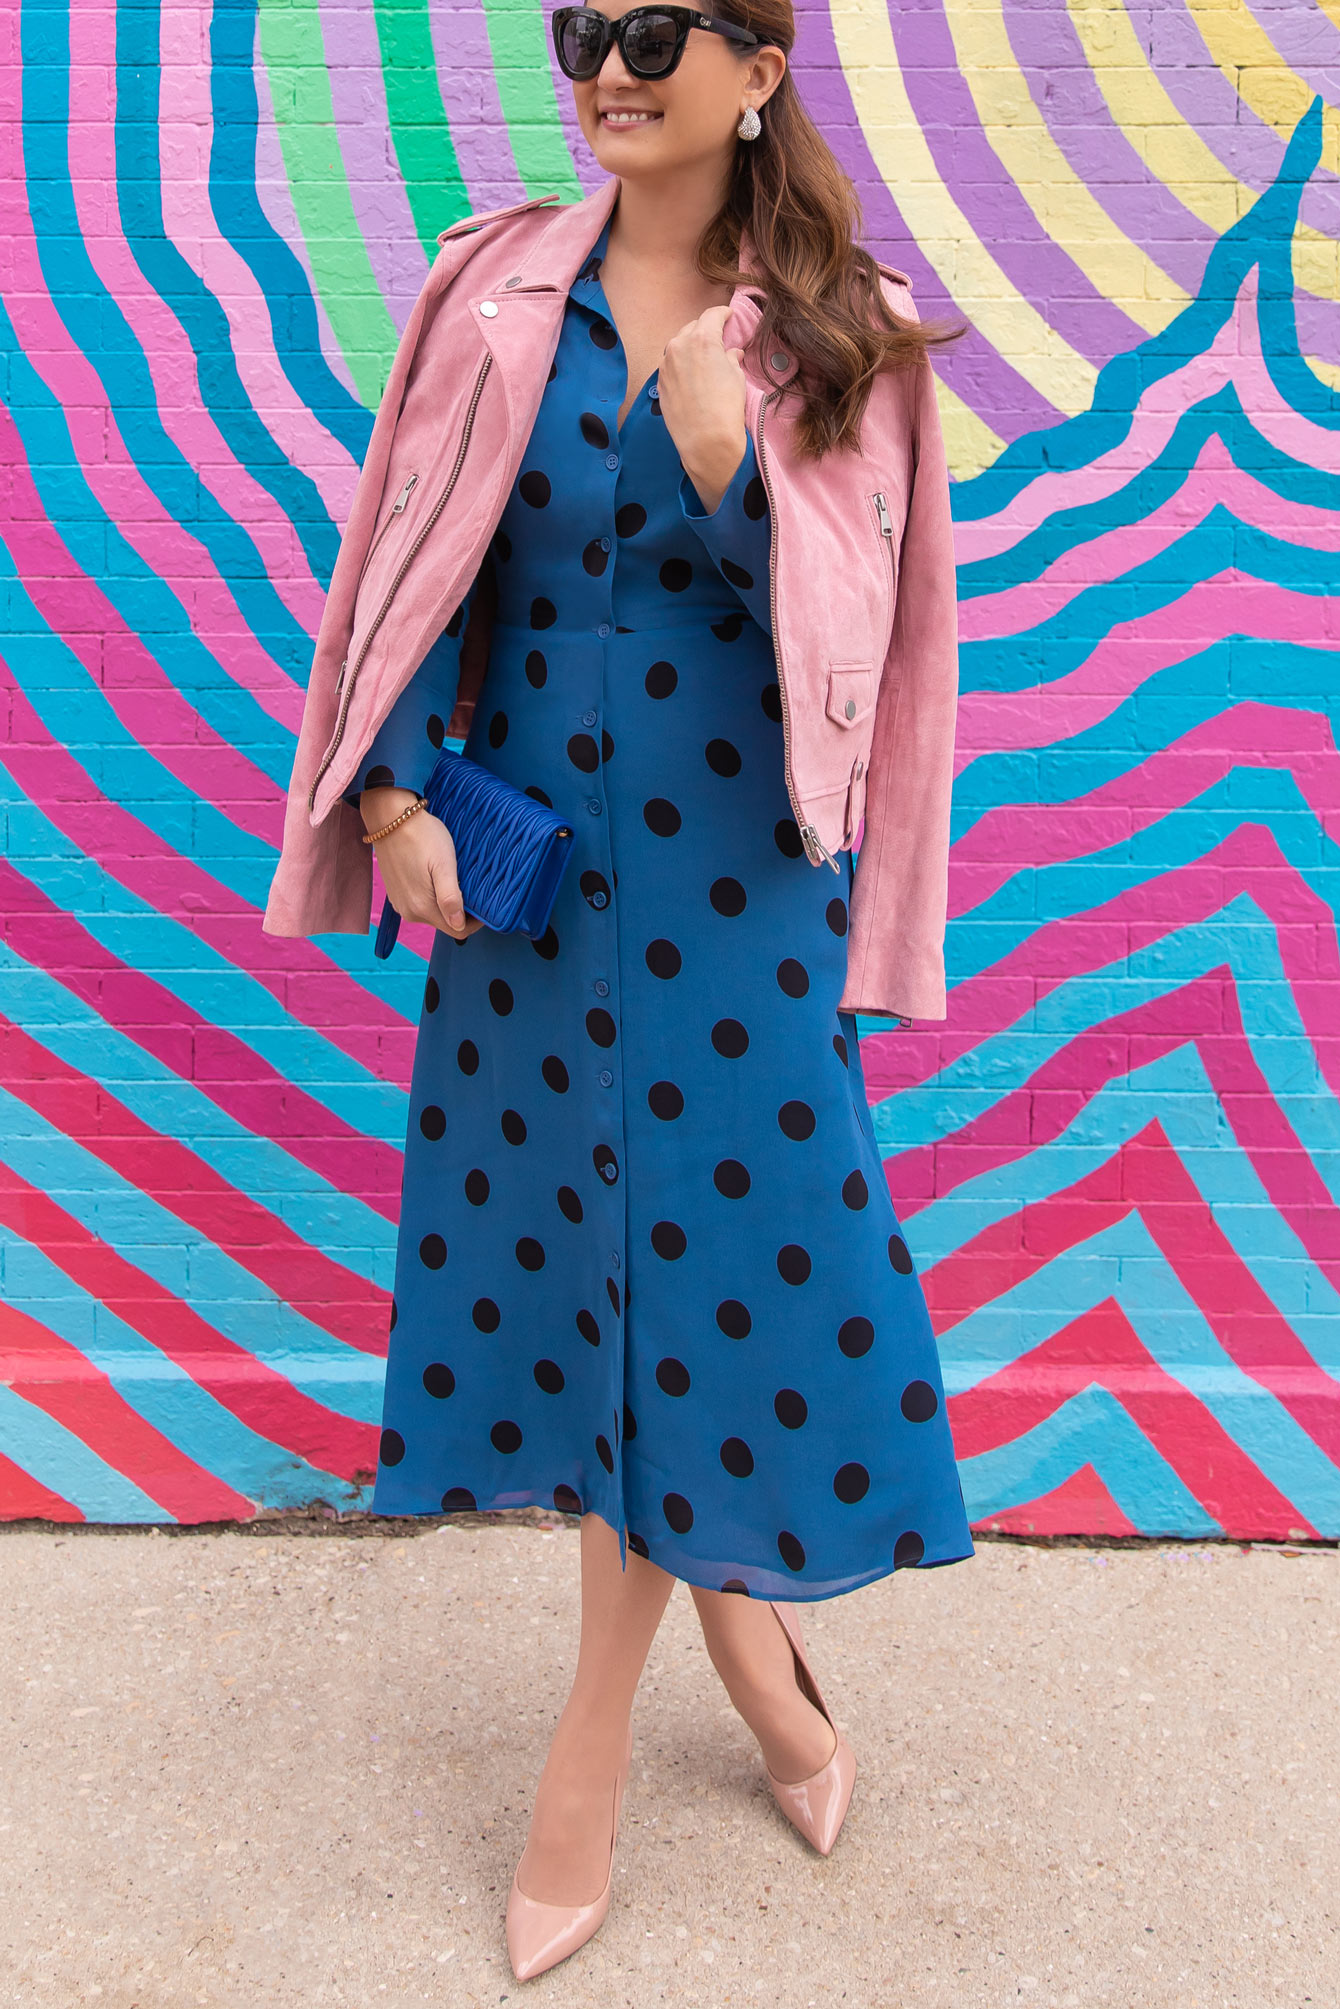 Reformation Blue Polka Dot Dress